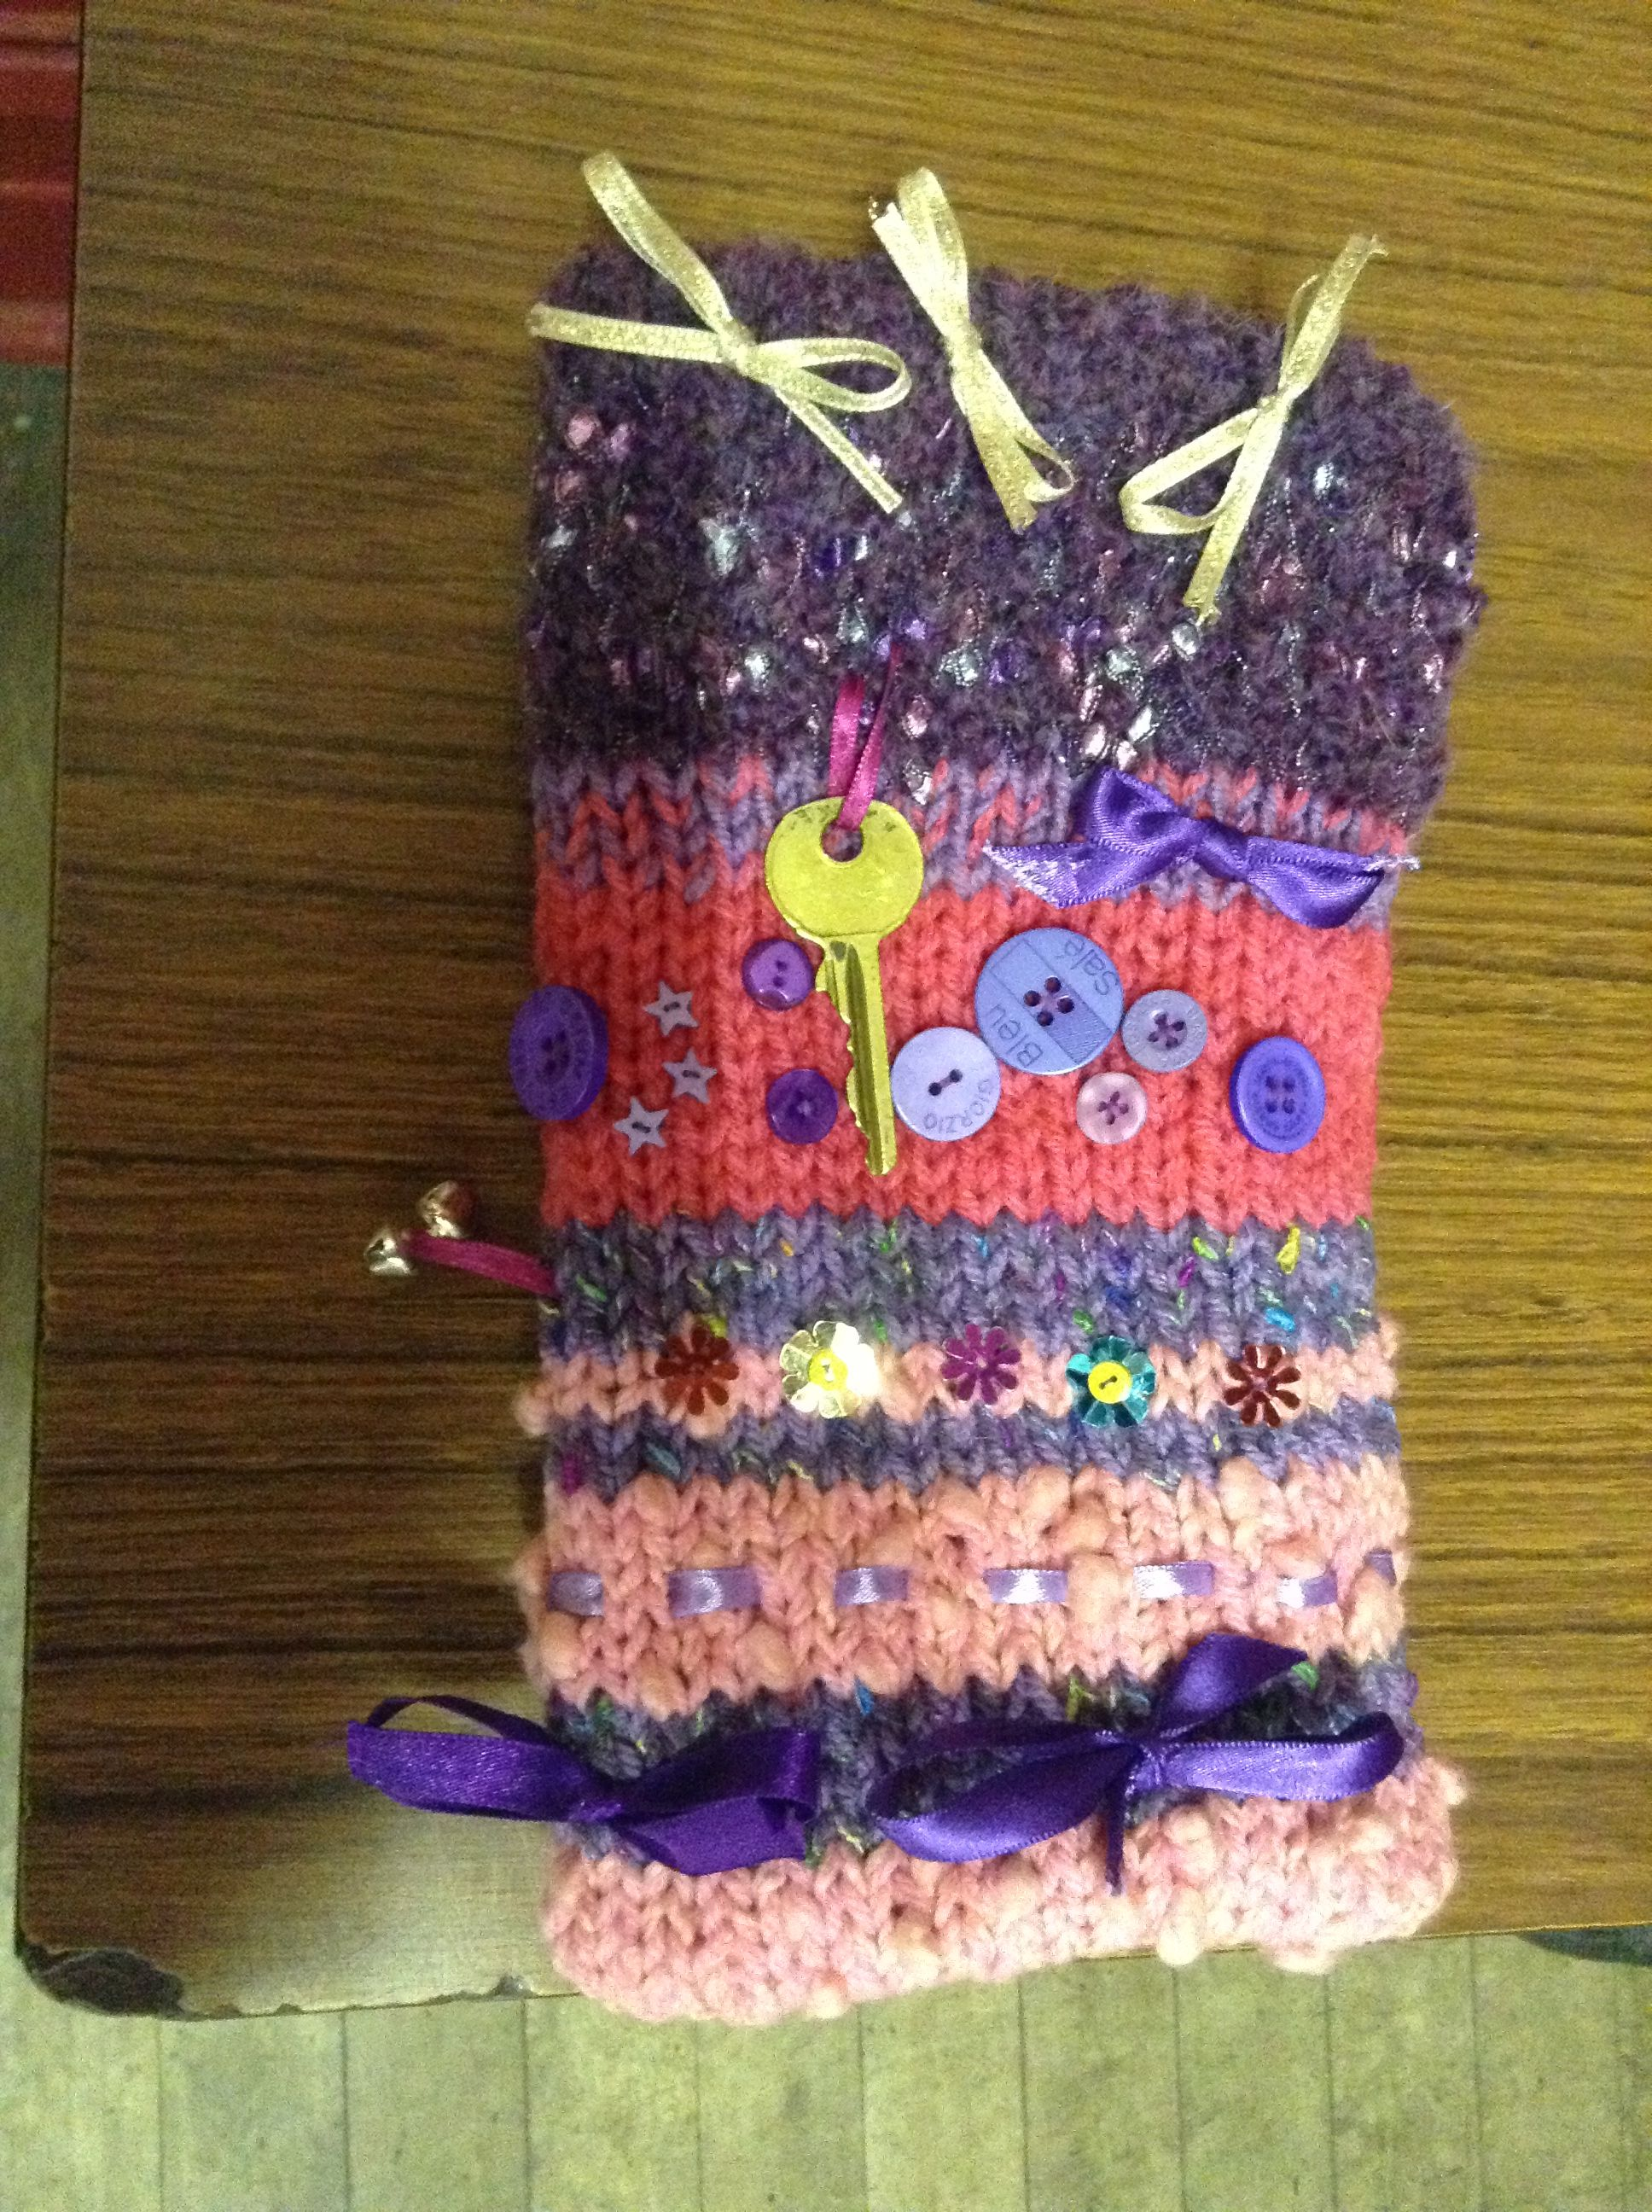 Knitted twiddle muff for dementia patient | Crochet ideas ...